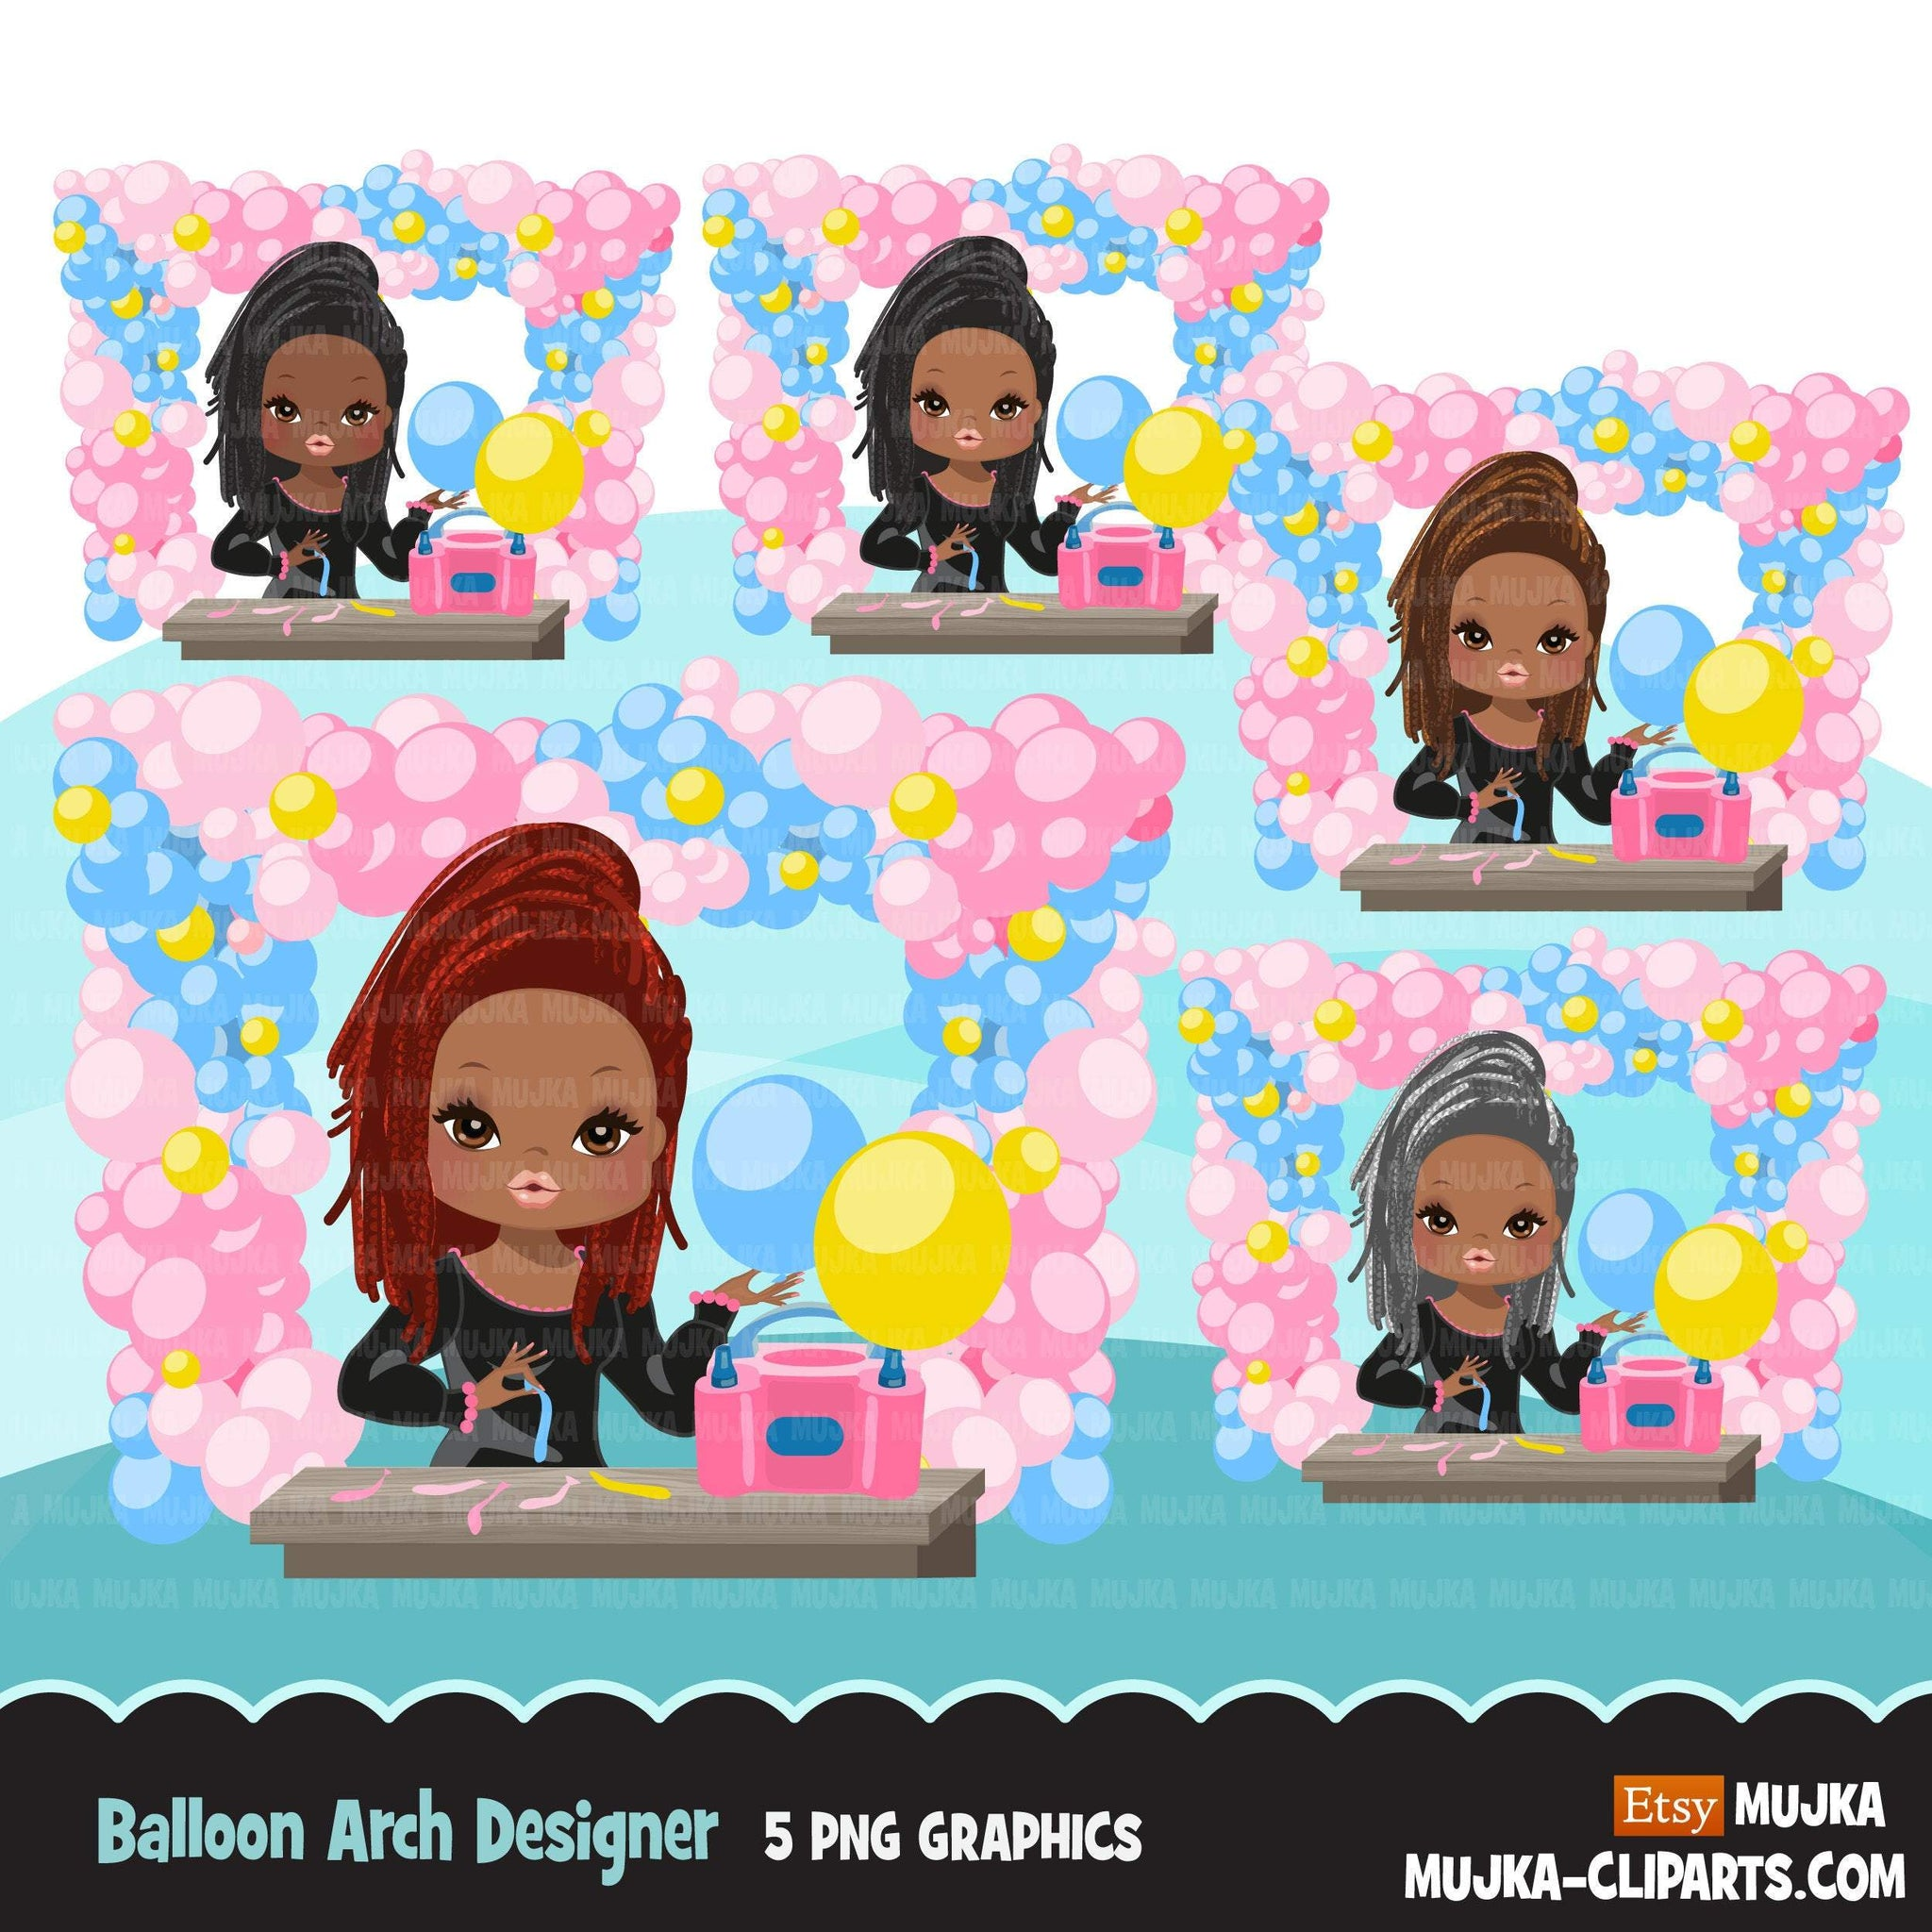 Black Balloon Arch Designer avatar clipart, print and cut, business boss girl clip art, party planner, event organizer